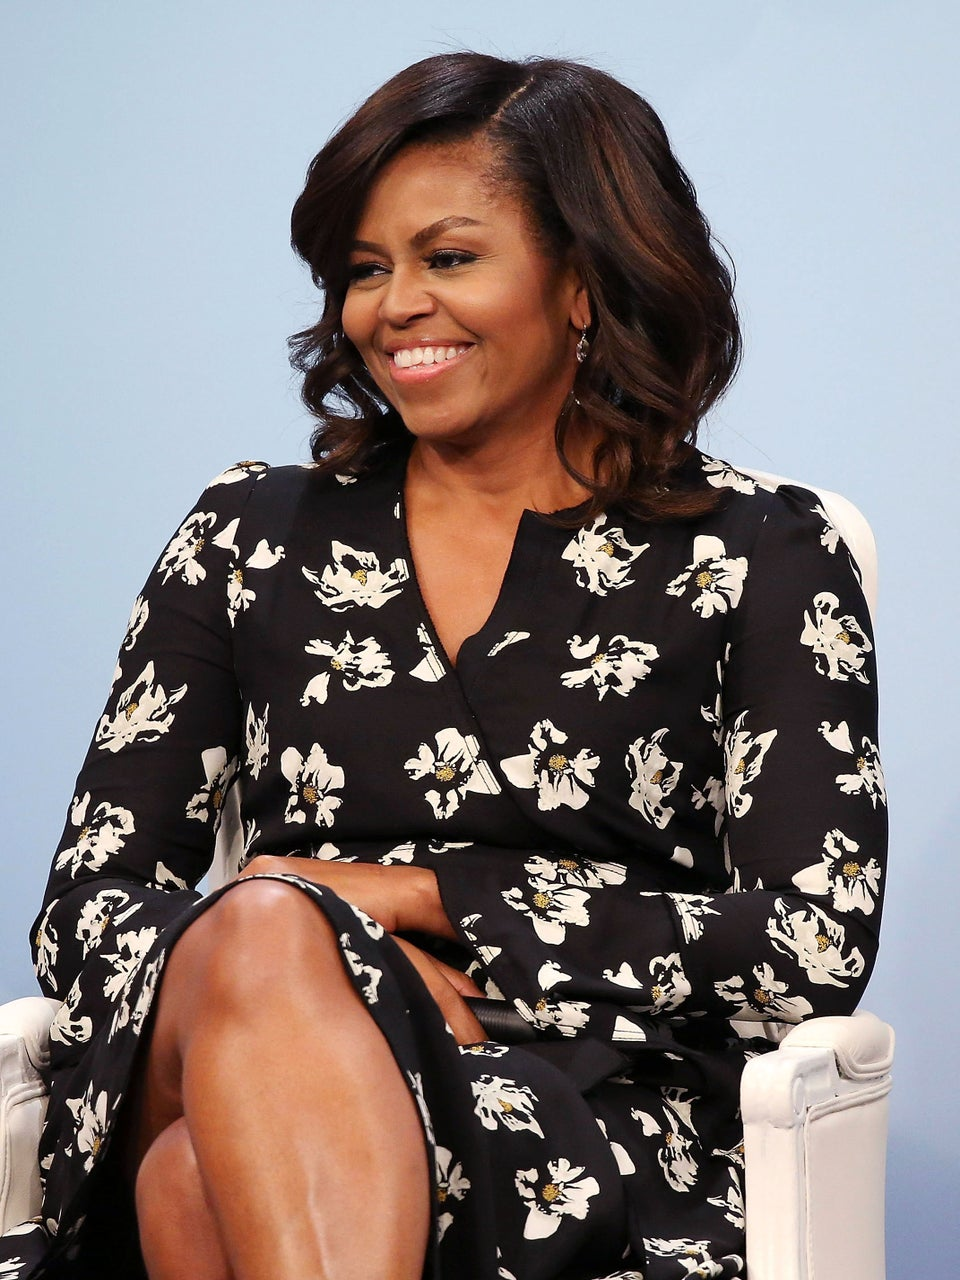 First Lady Michelle Obama's Response To Being Called An 'Angry Black Woman' Is Spot On